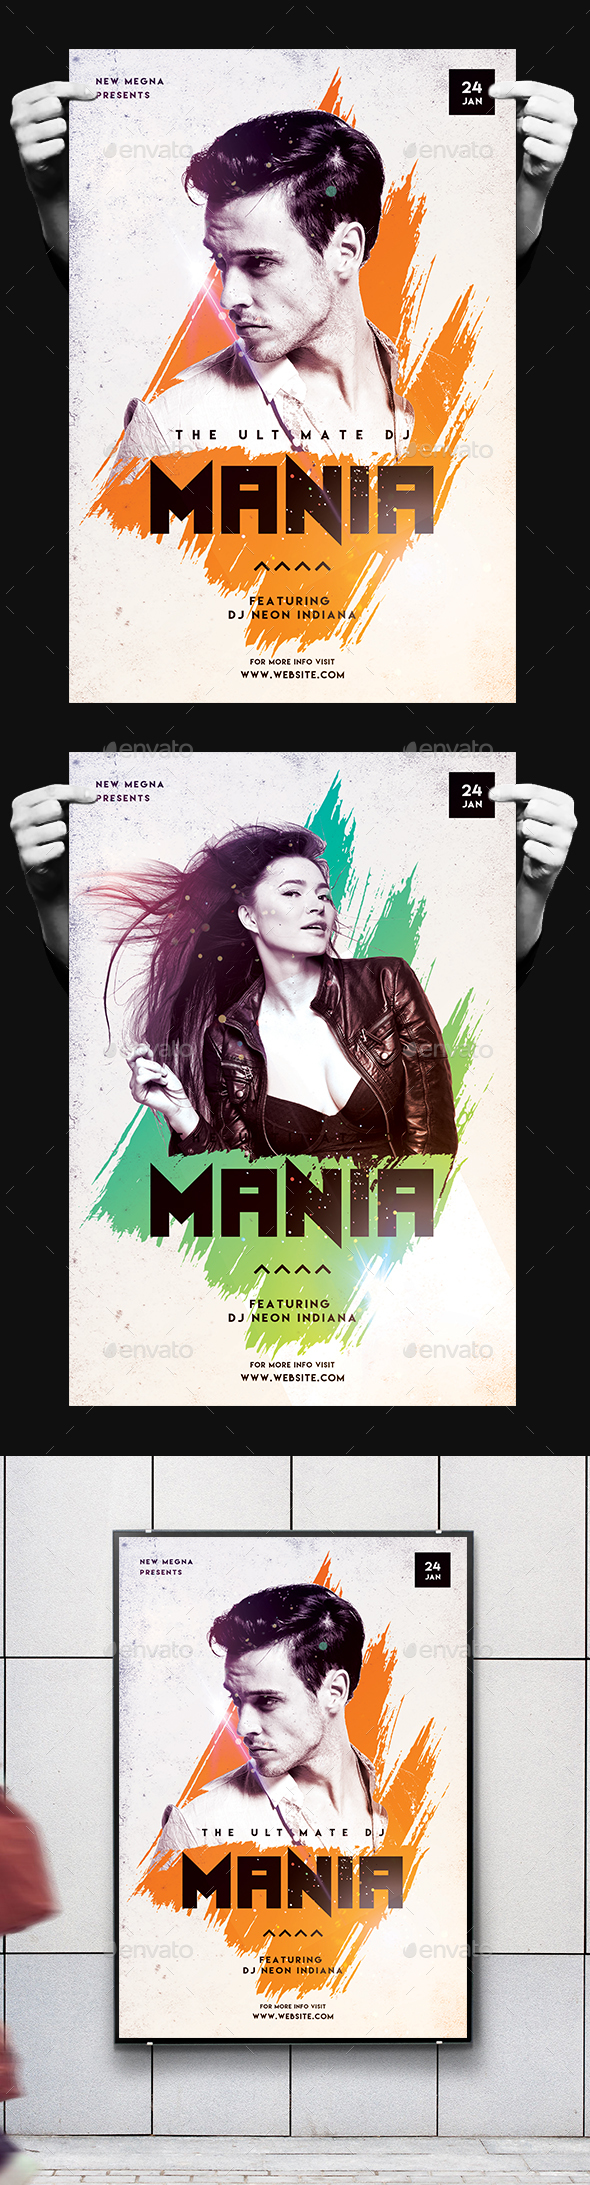 DJ Mania Poster/Flyer - Clubs & Parties Events